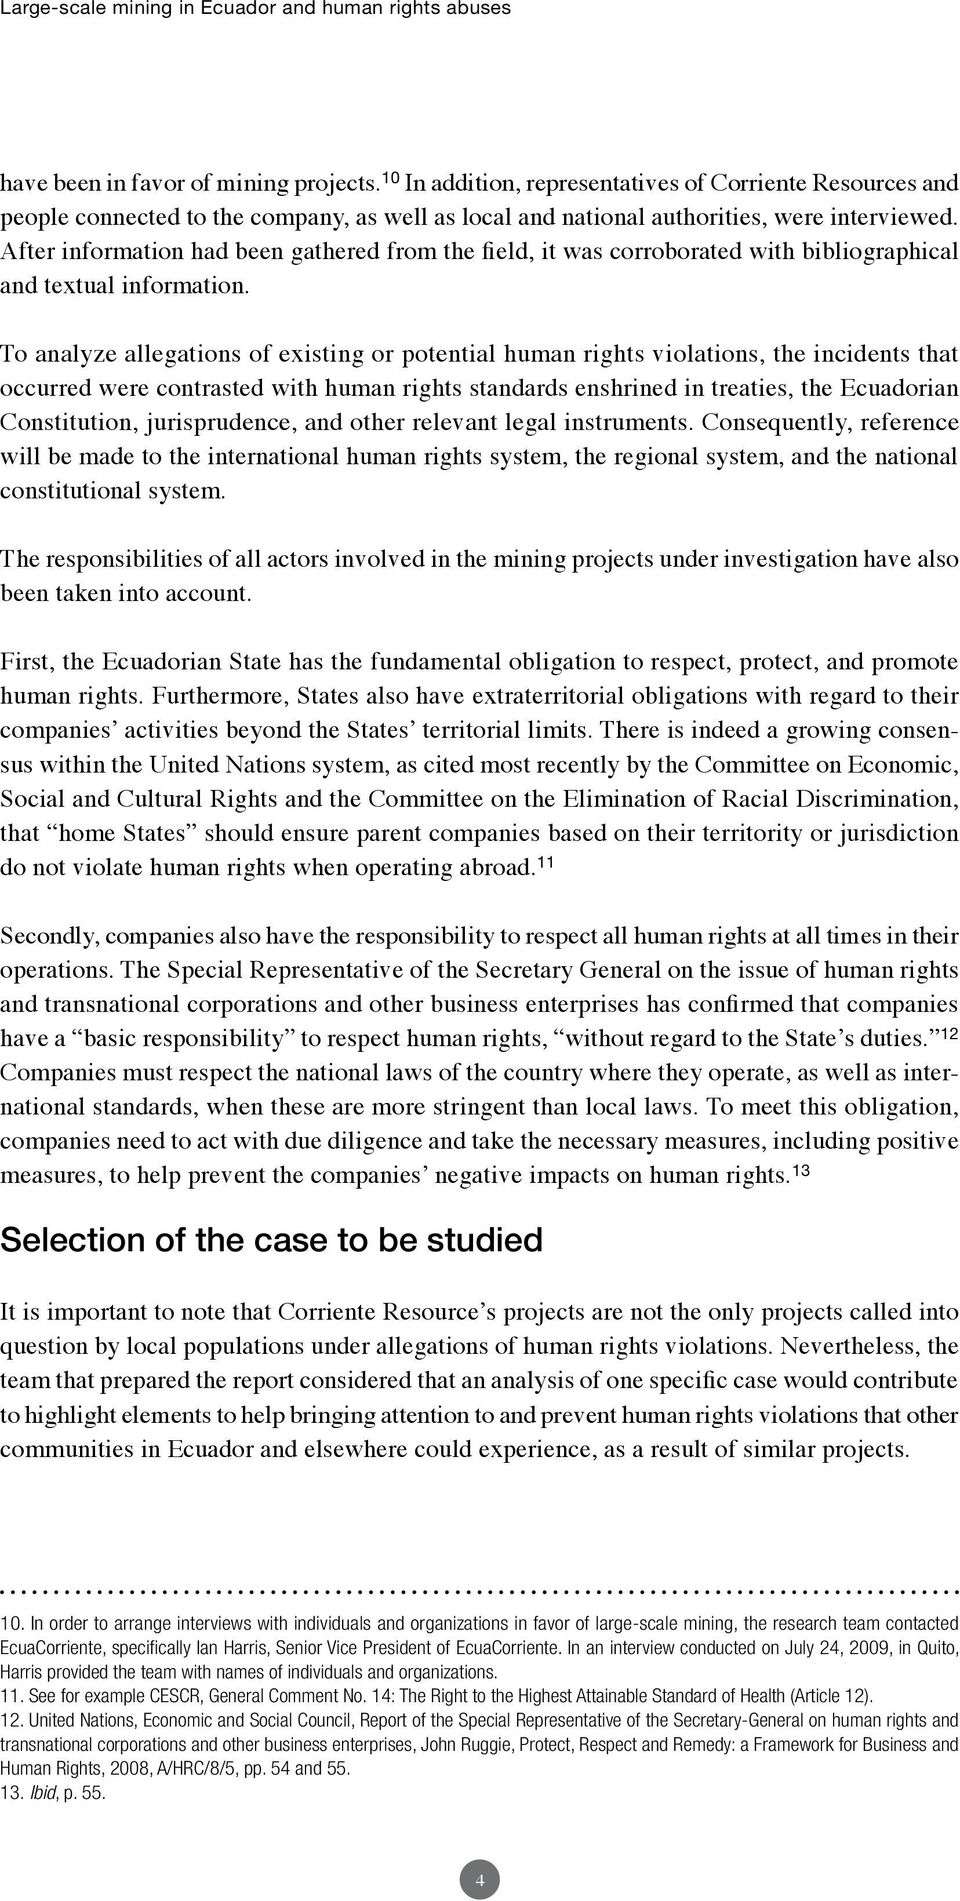 To analyze allegations of existing or potential human rights violations, the incidents that occurred were contrasted with human rights standards enshrined in treaties, the Ecuadorian Constitution,